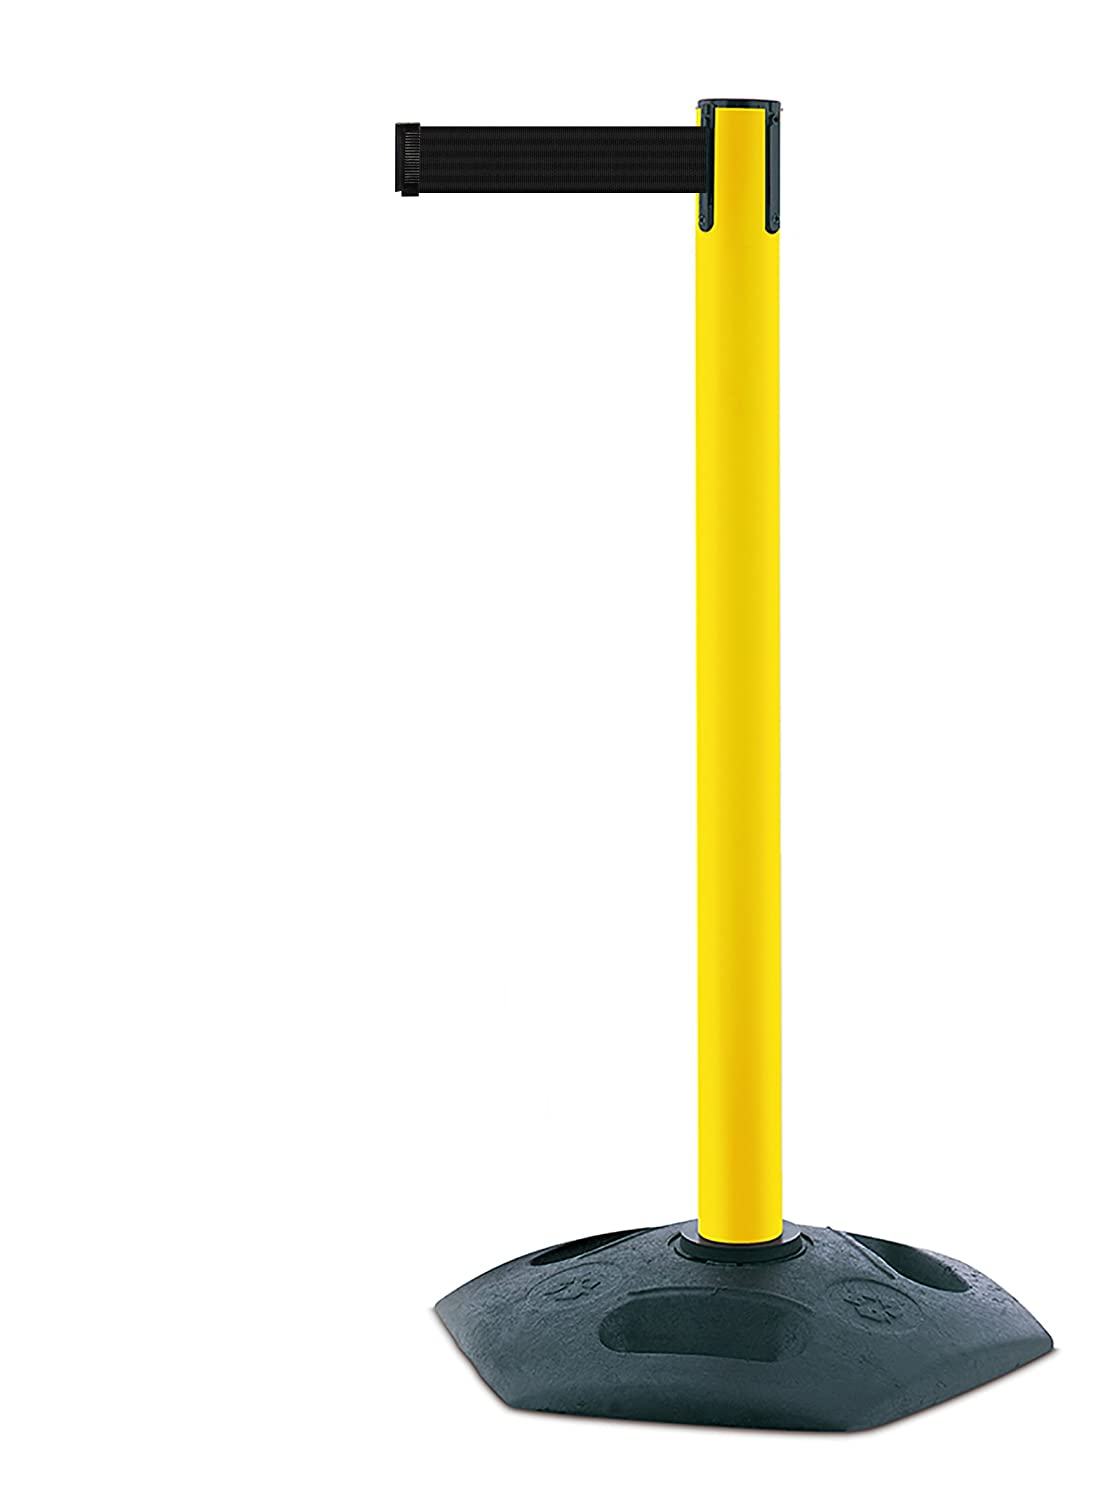 Tensabarrier Heavy Duty Post in Yellow with a Black Rubber Base and 3.65m of Black Webbing with an Anti Tamper Tape End Tensator 886M-35-B9